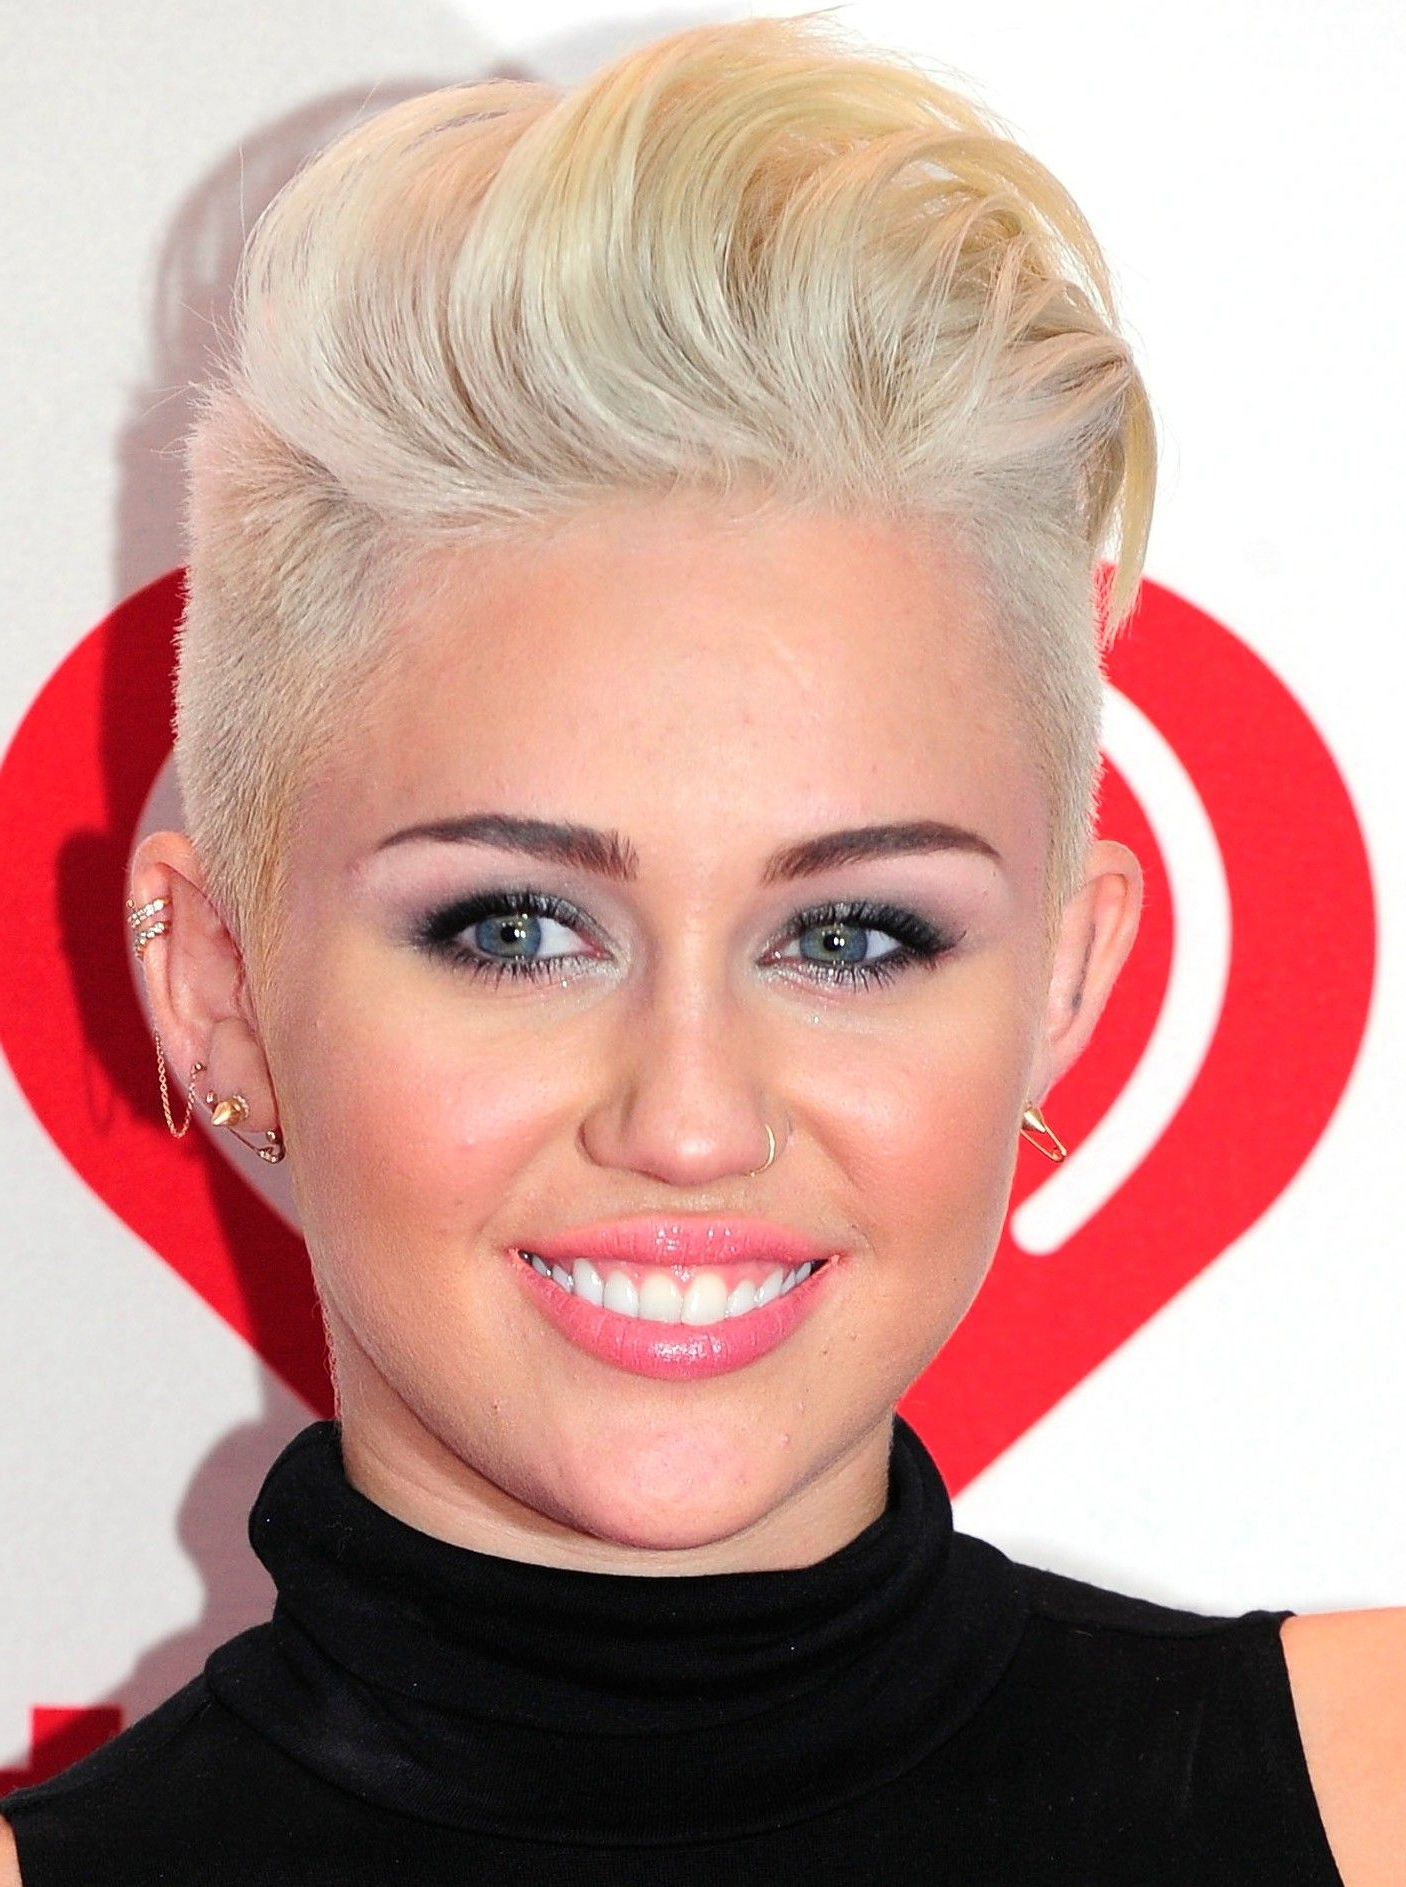 Miley Cyrus Short Hairstyle | Hair | Pinterest | Short Hair Styles With Regard To Miley Cyrus Short Haircuts (View 12 of 25)